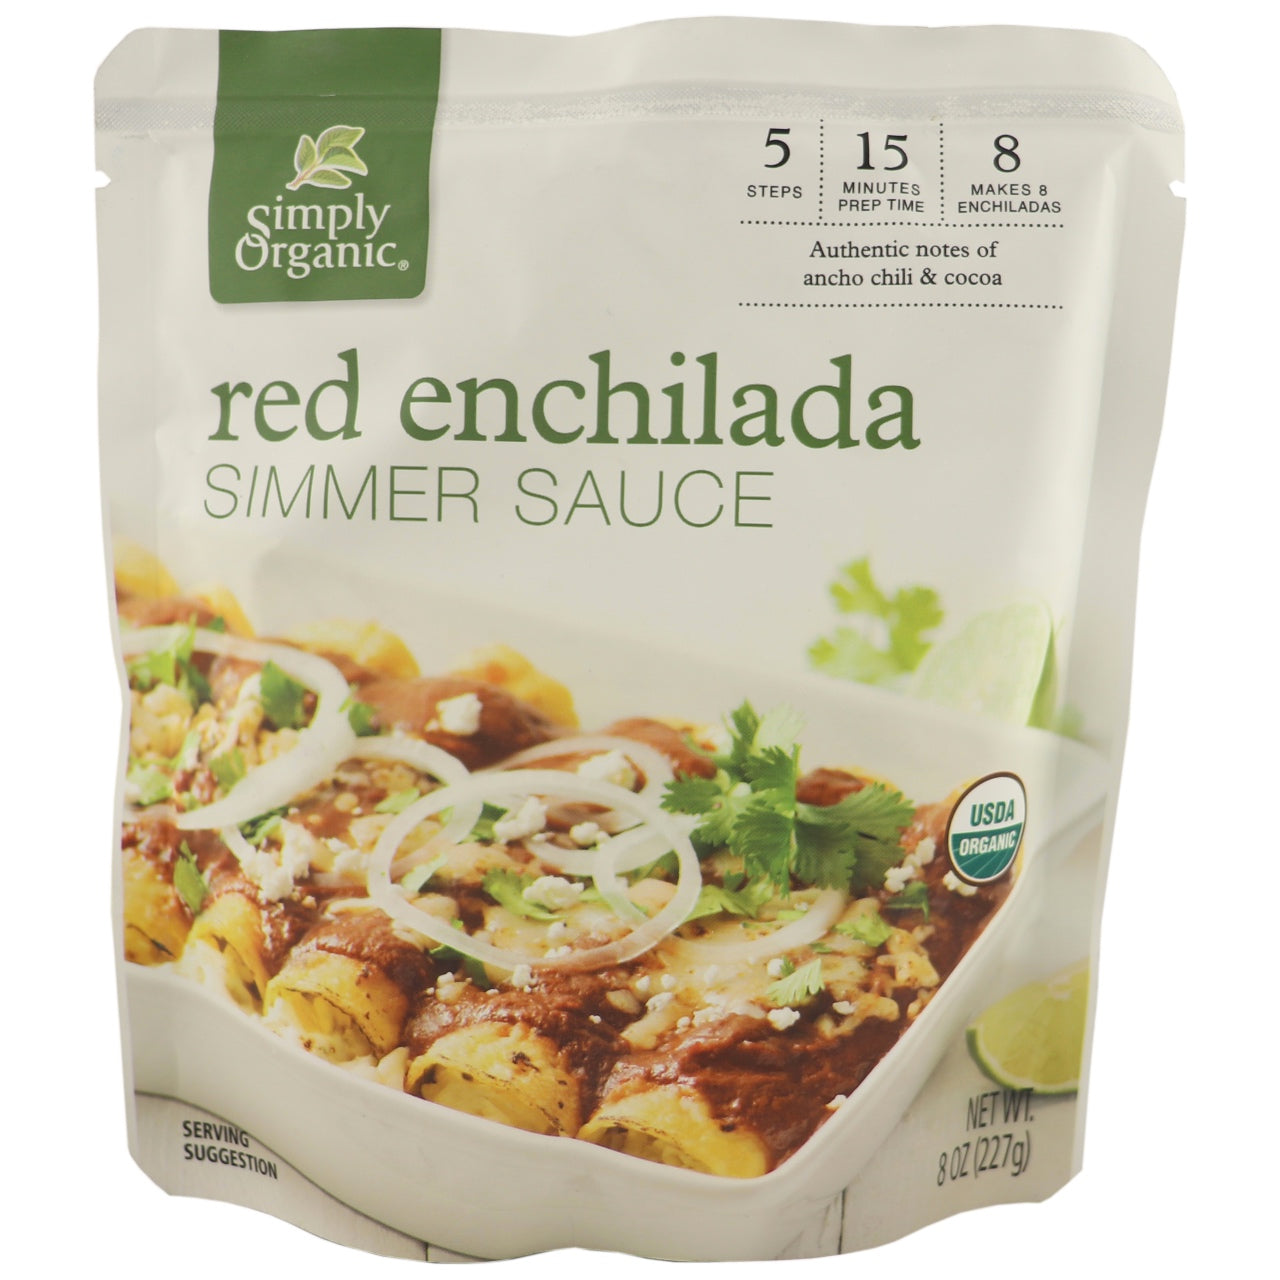 Simply Organic Red Enchilada Simmer Sauce